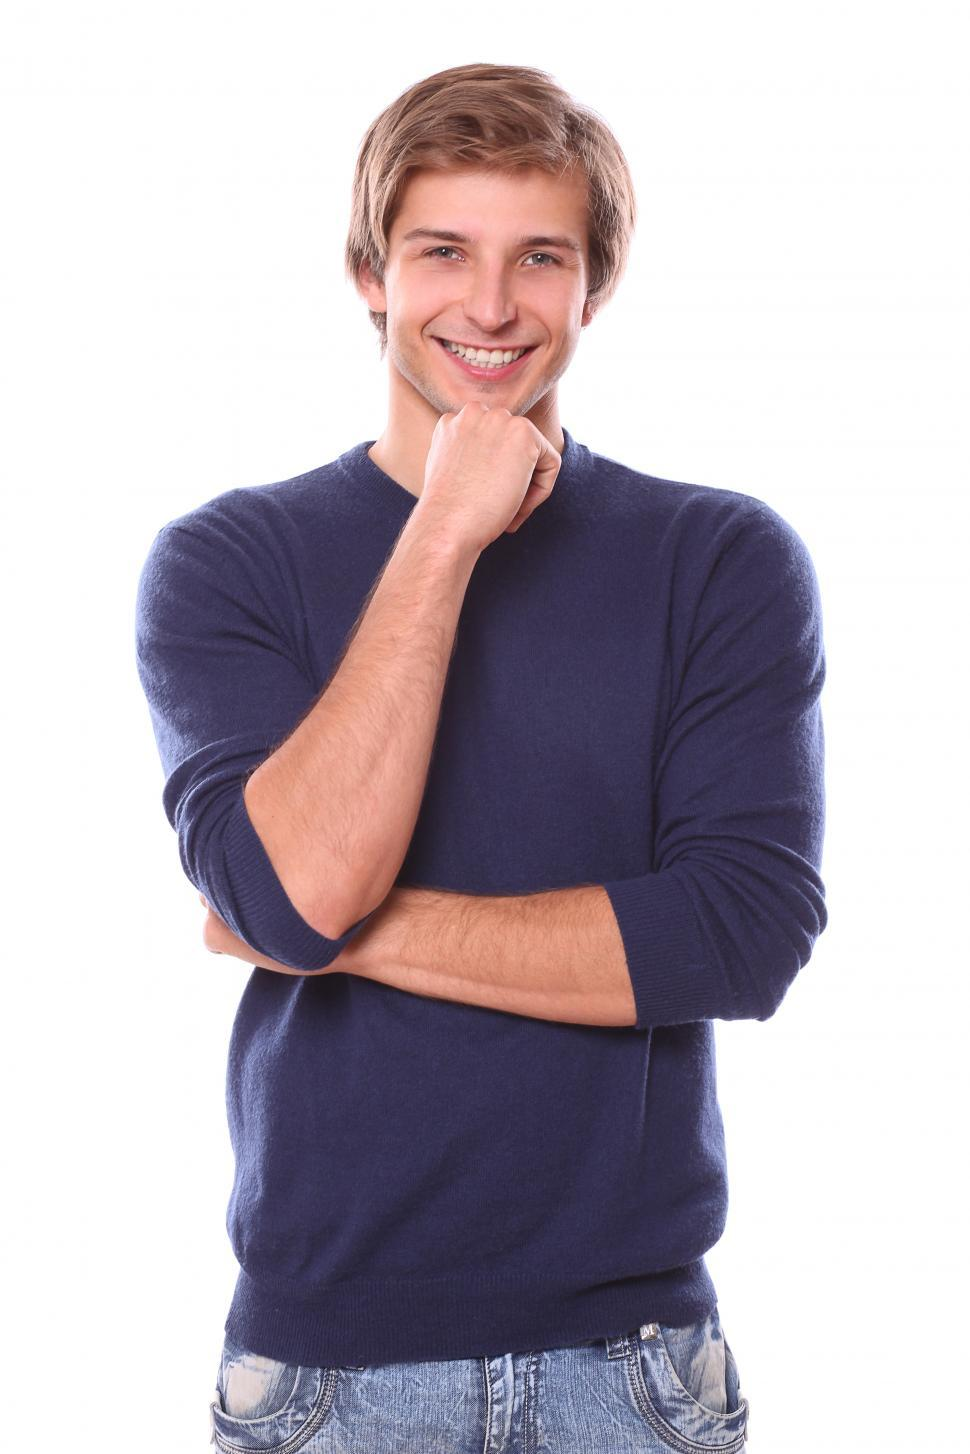 Download Free Stock Photo of Pleasant attractive looking man with chin in hand